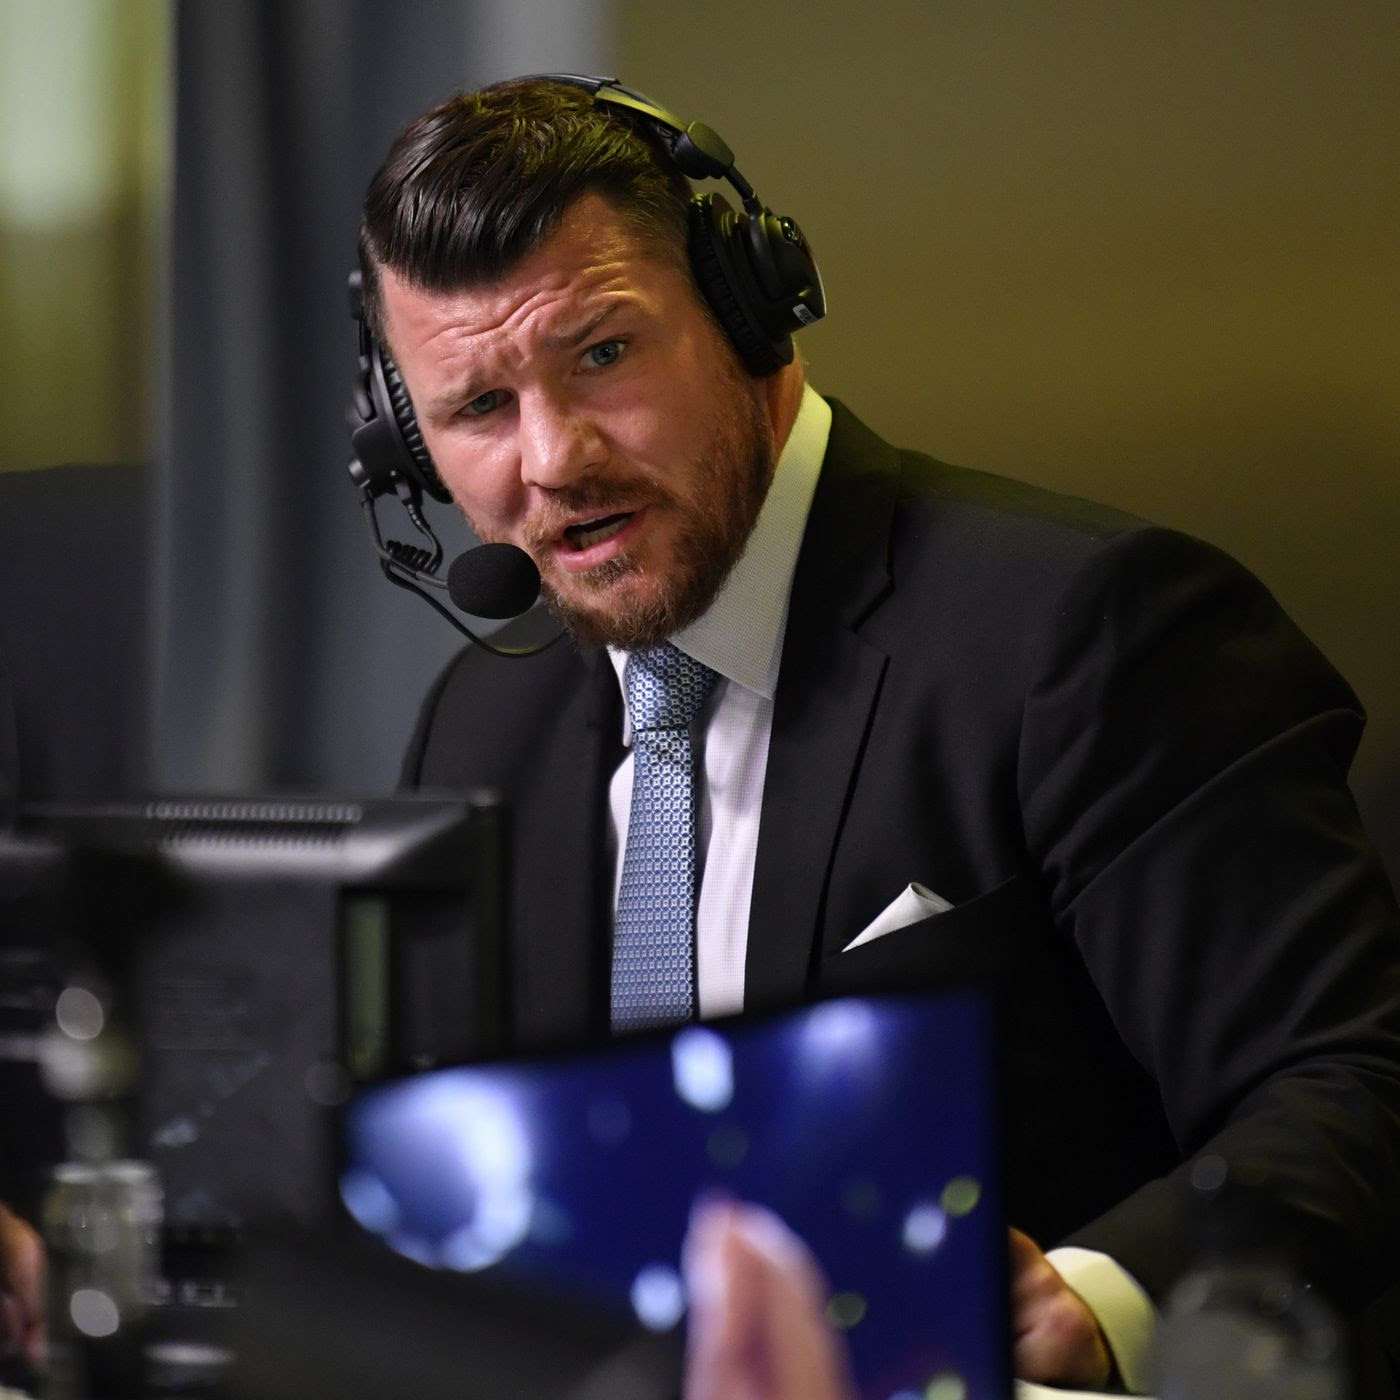 Bisping slams Belfort for going too hard on 'old man' Holyfield: It was only an exhibition